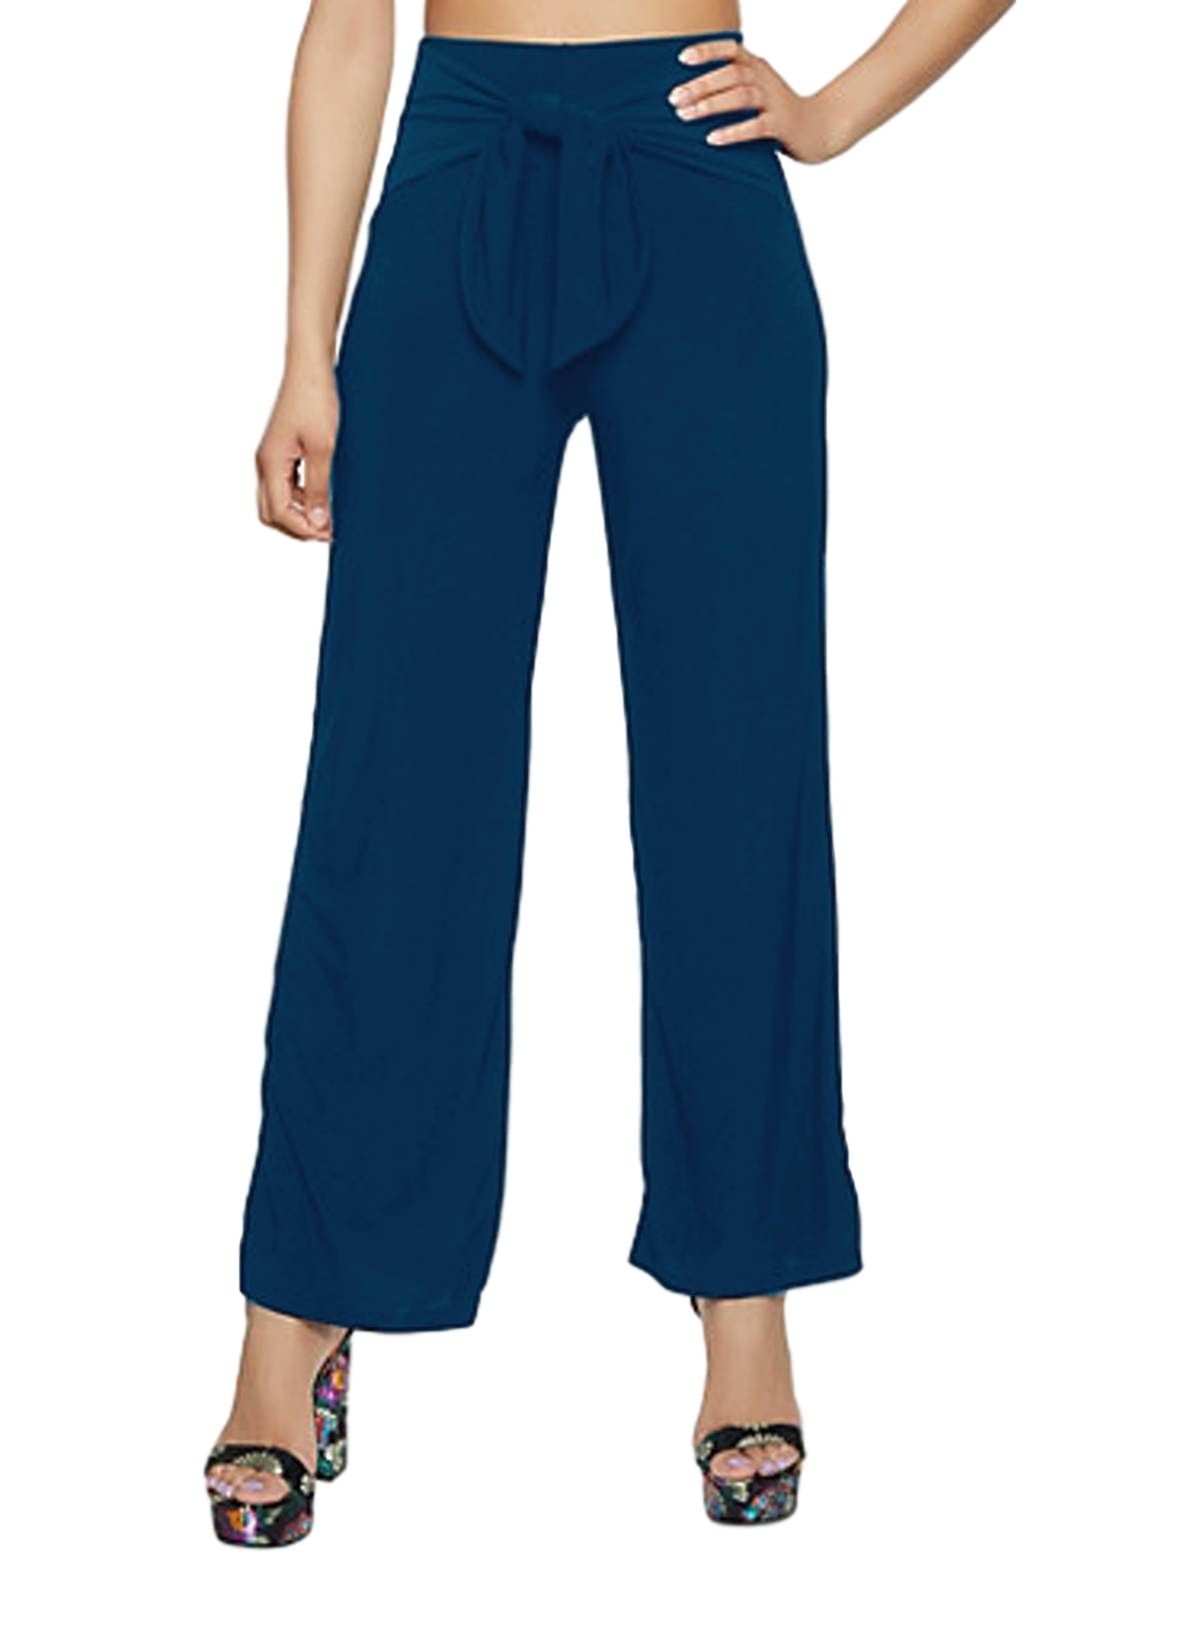 Relaxed Fit Culottes Trousers in Sky Blue